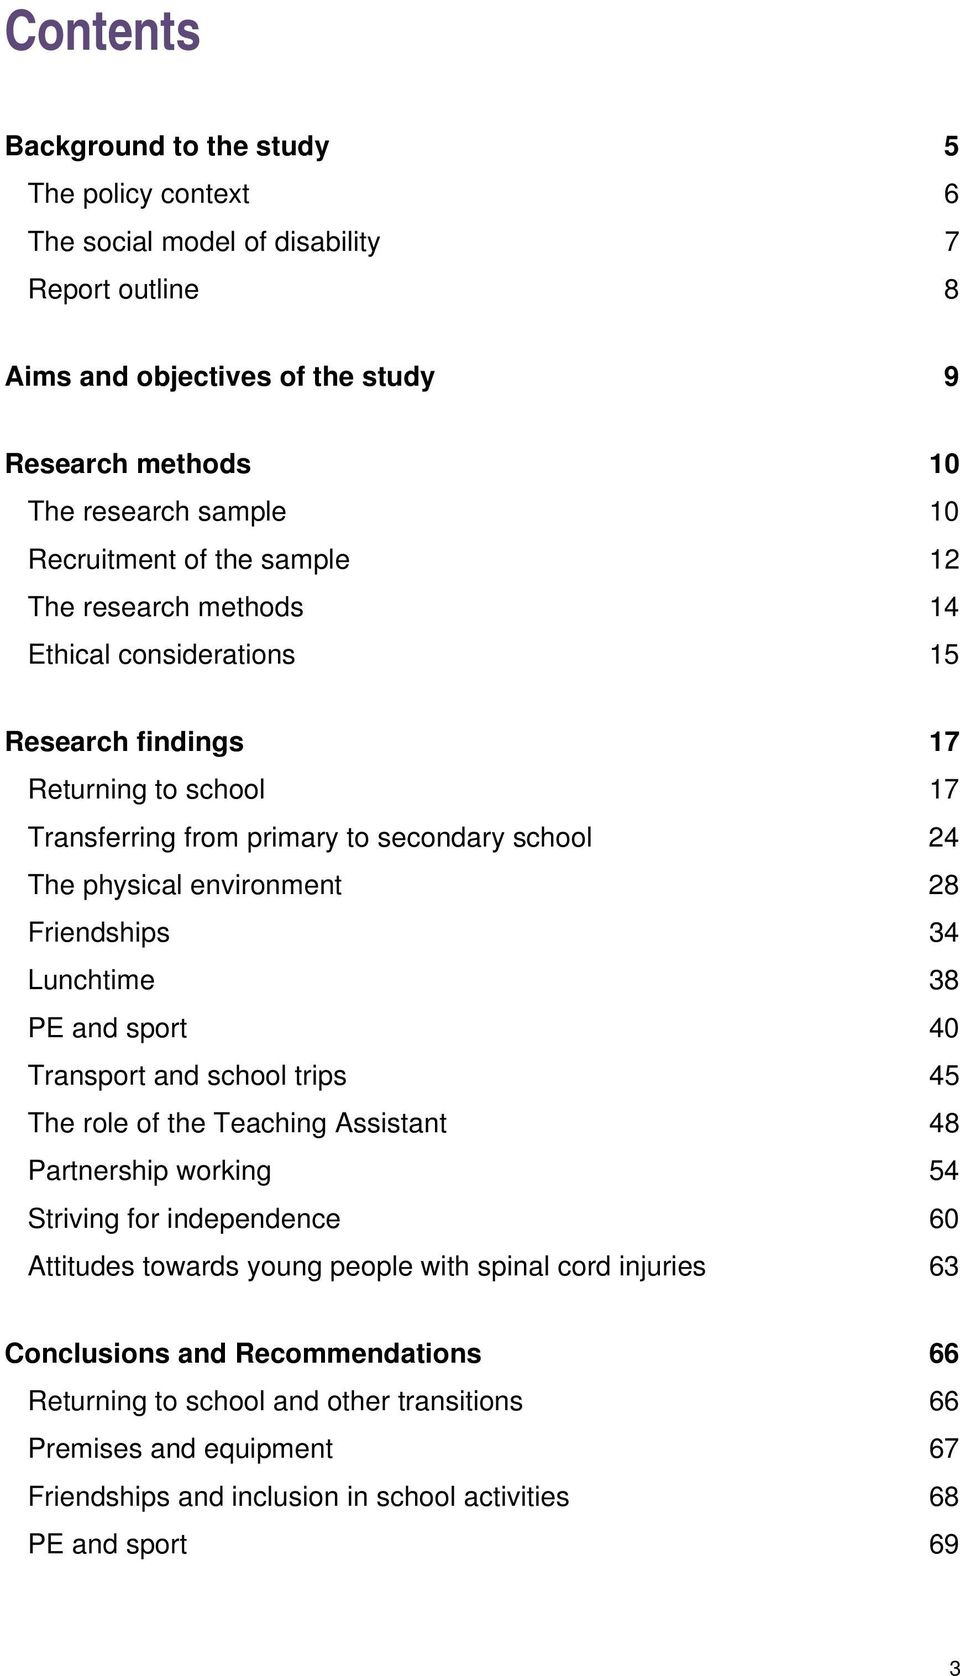 Friendships 34 Lunchtime 38 PE and sport 40 Transport and school trips 45 The role of the Teaching Assistant 48 Partnership working 54 Striving for independence 60 Attitudes towards young people